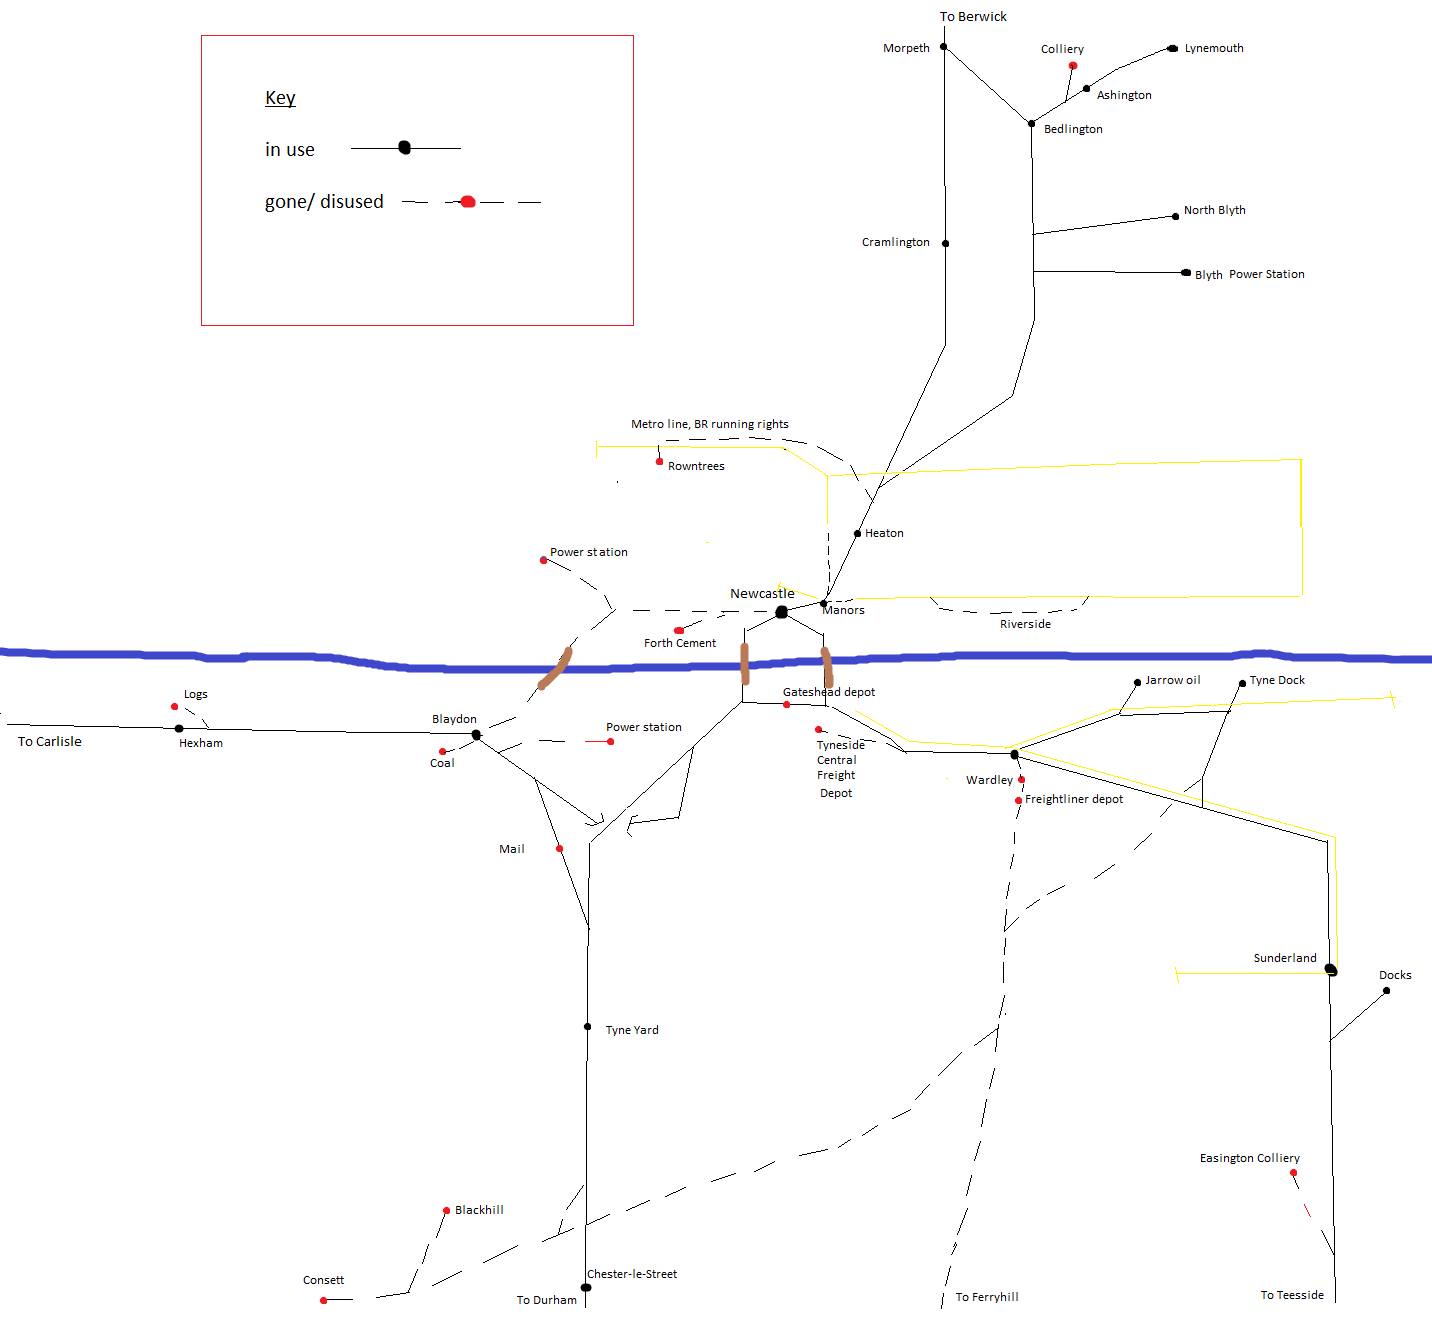 I'm trying to piece together a map of what has changed rail-wise on Tyneside since the 70's/80's. If anyone could point out mistakes I would be really